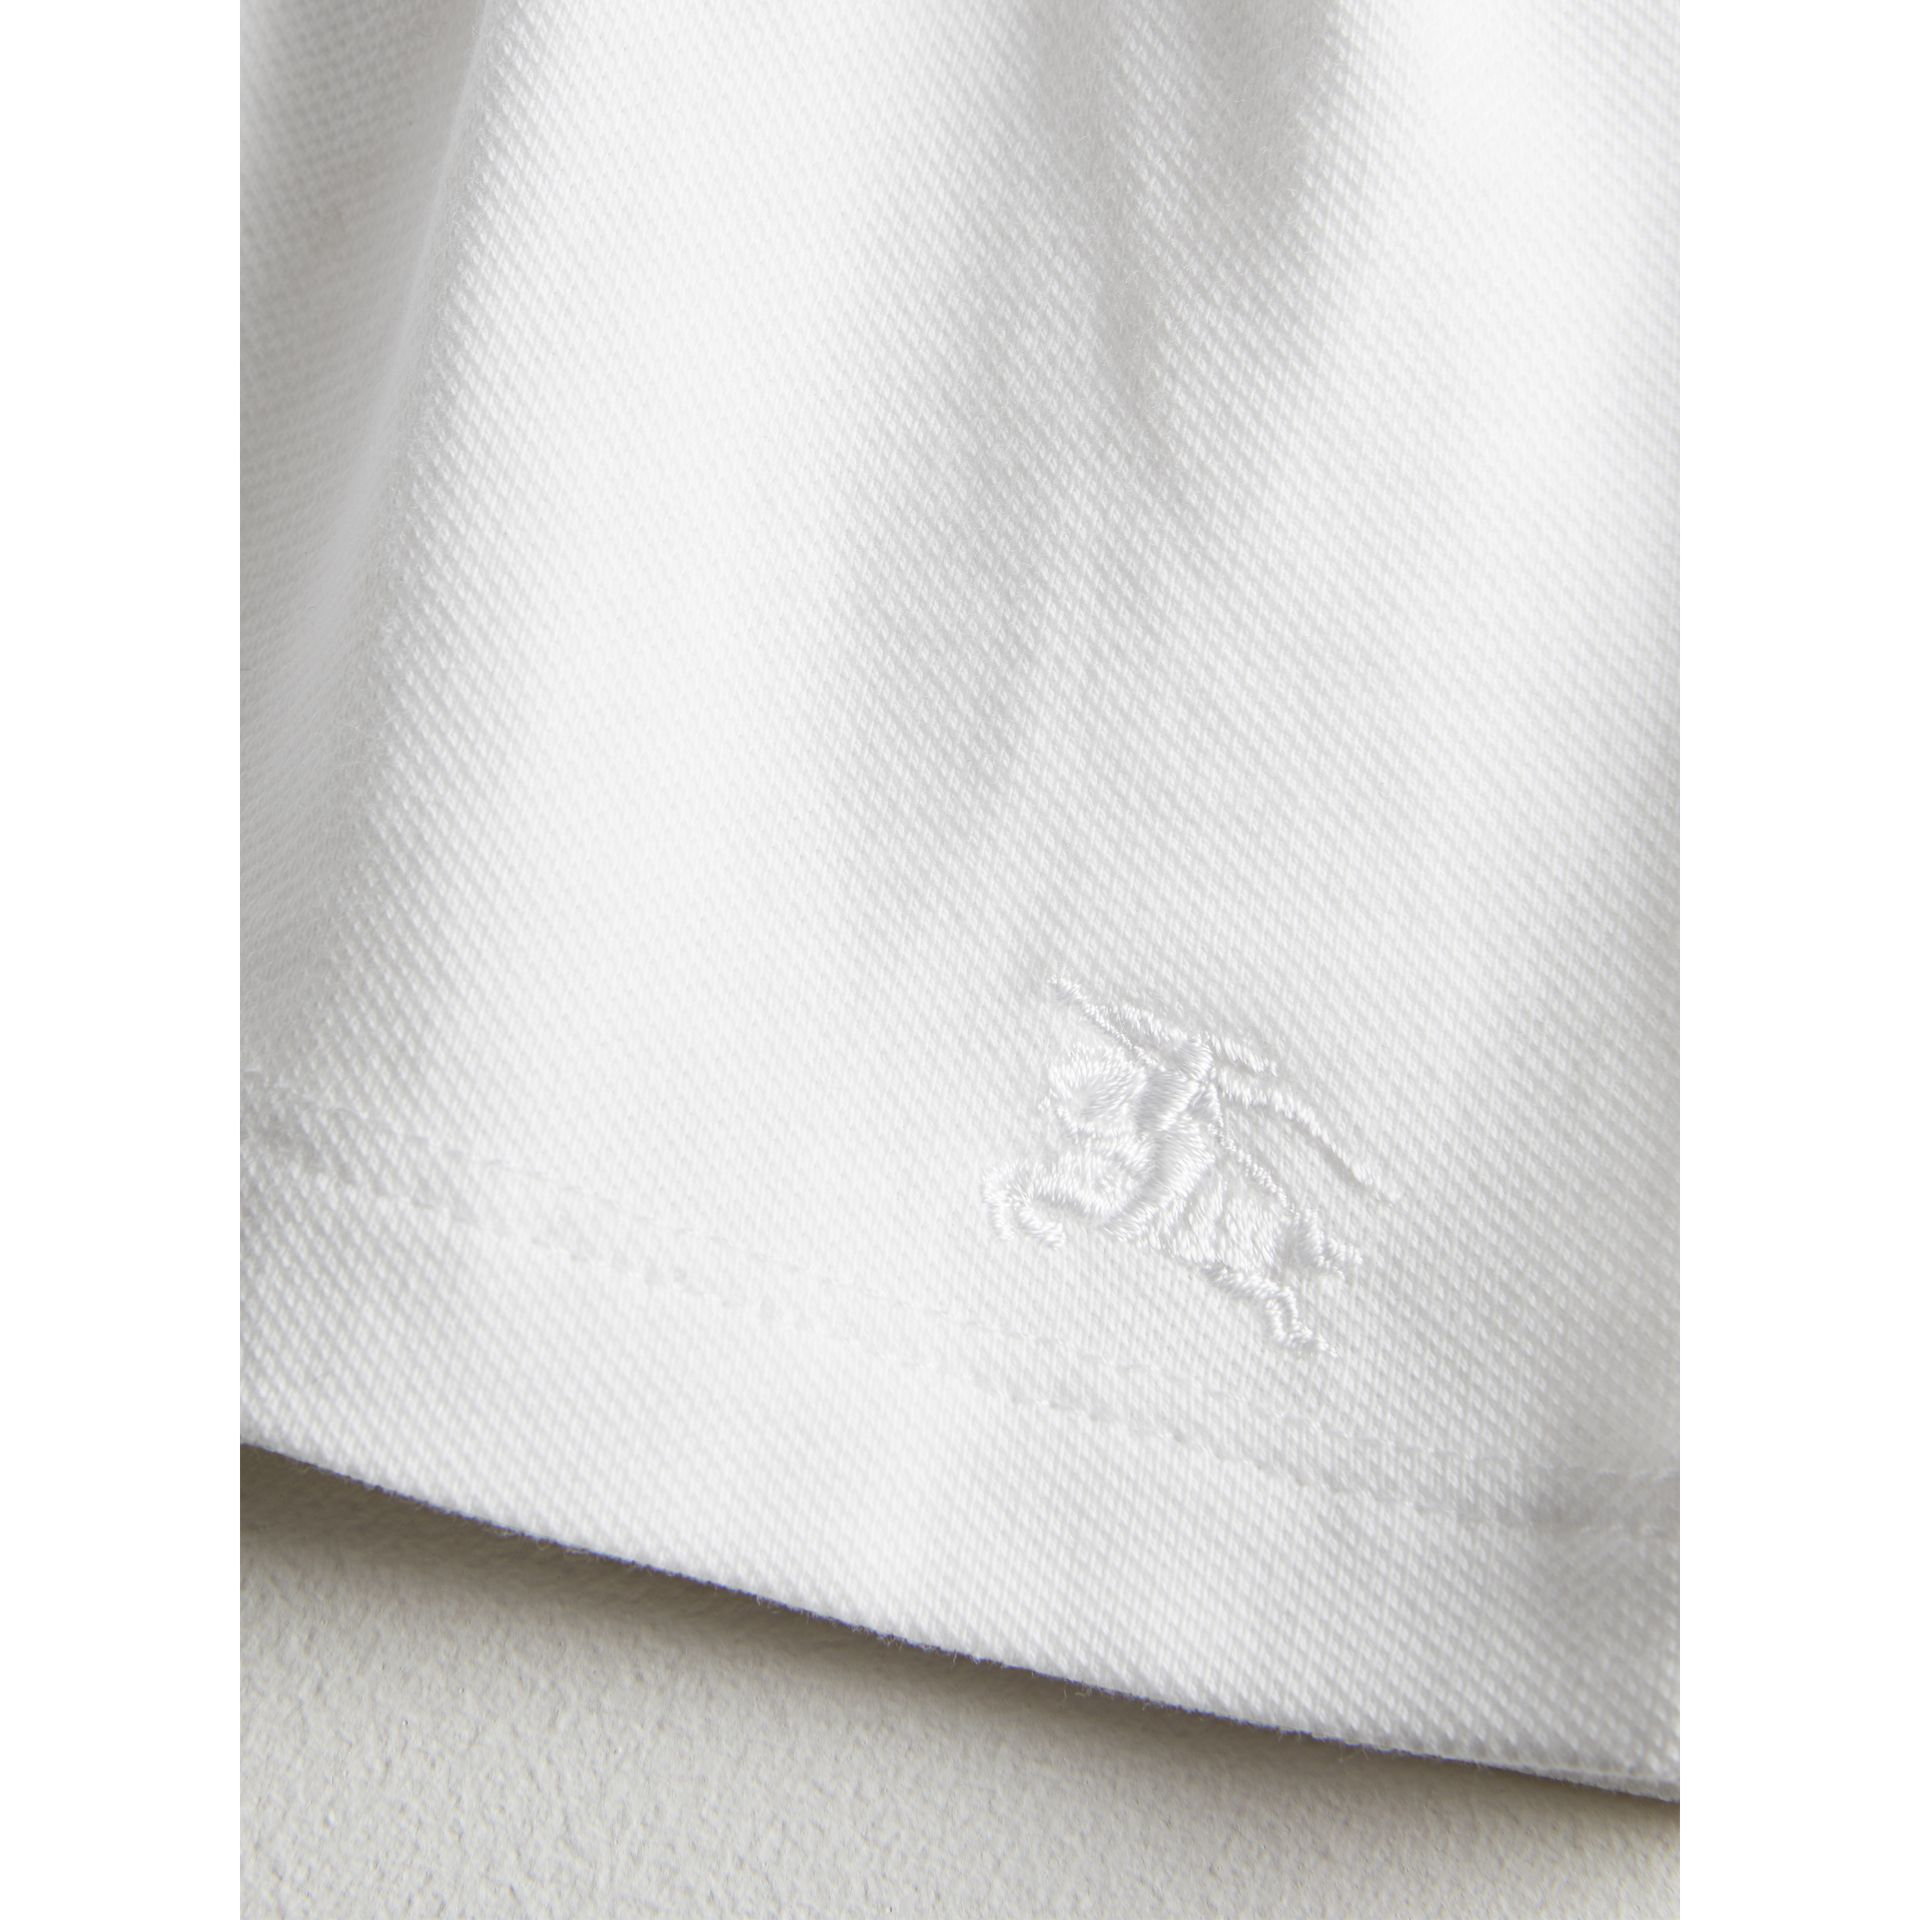 Check Detail Stretch Cotton Piqué Dress in White | Burberry - gallery image 1